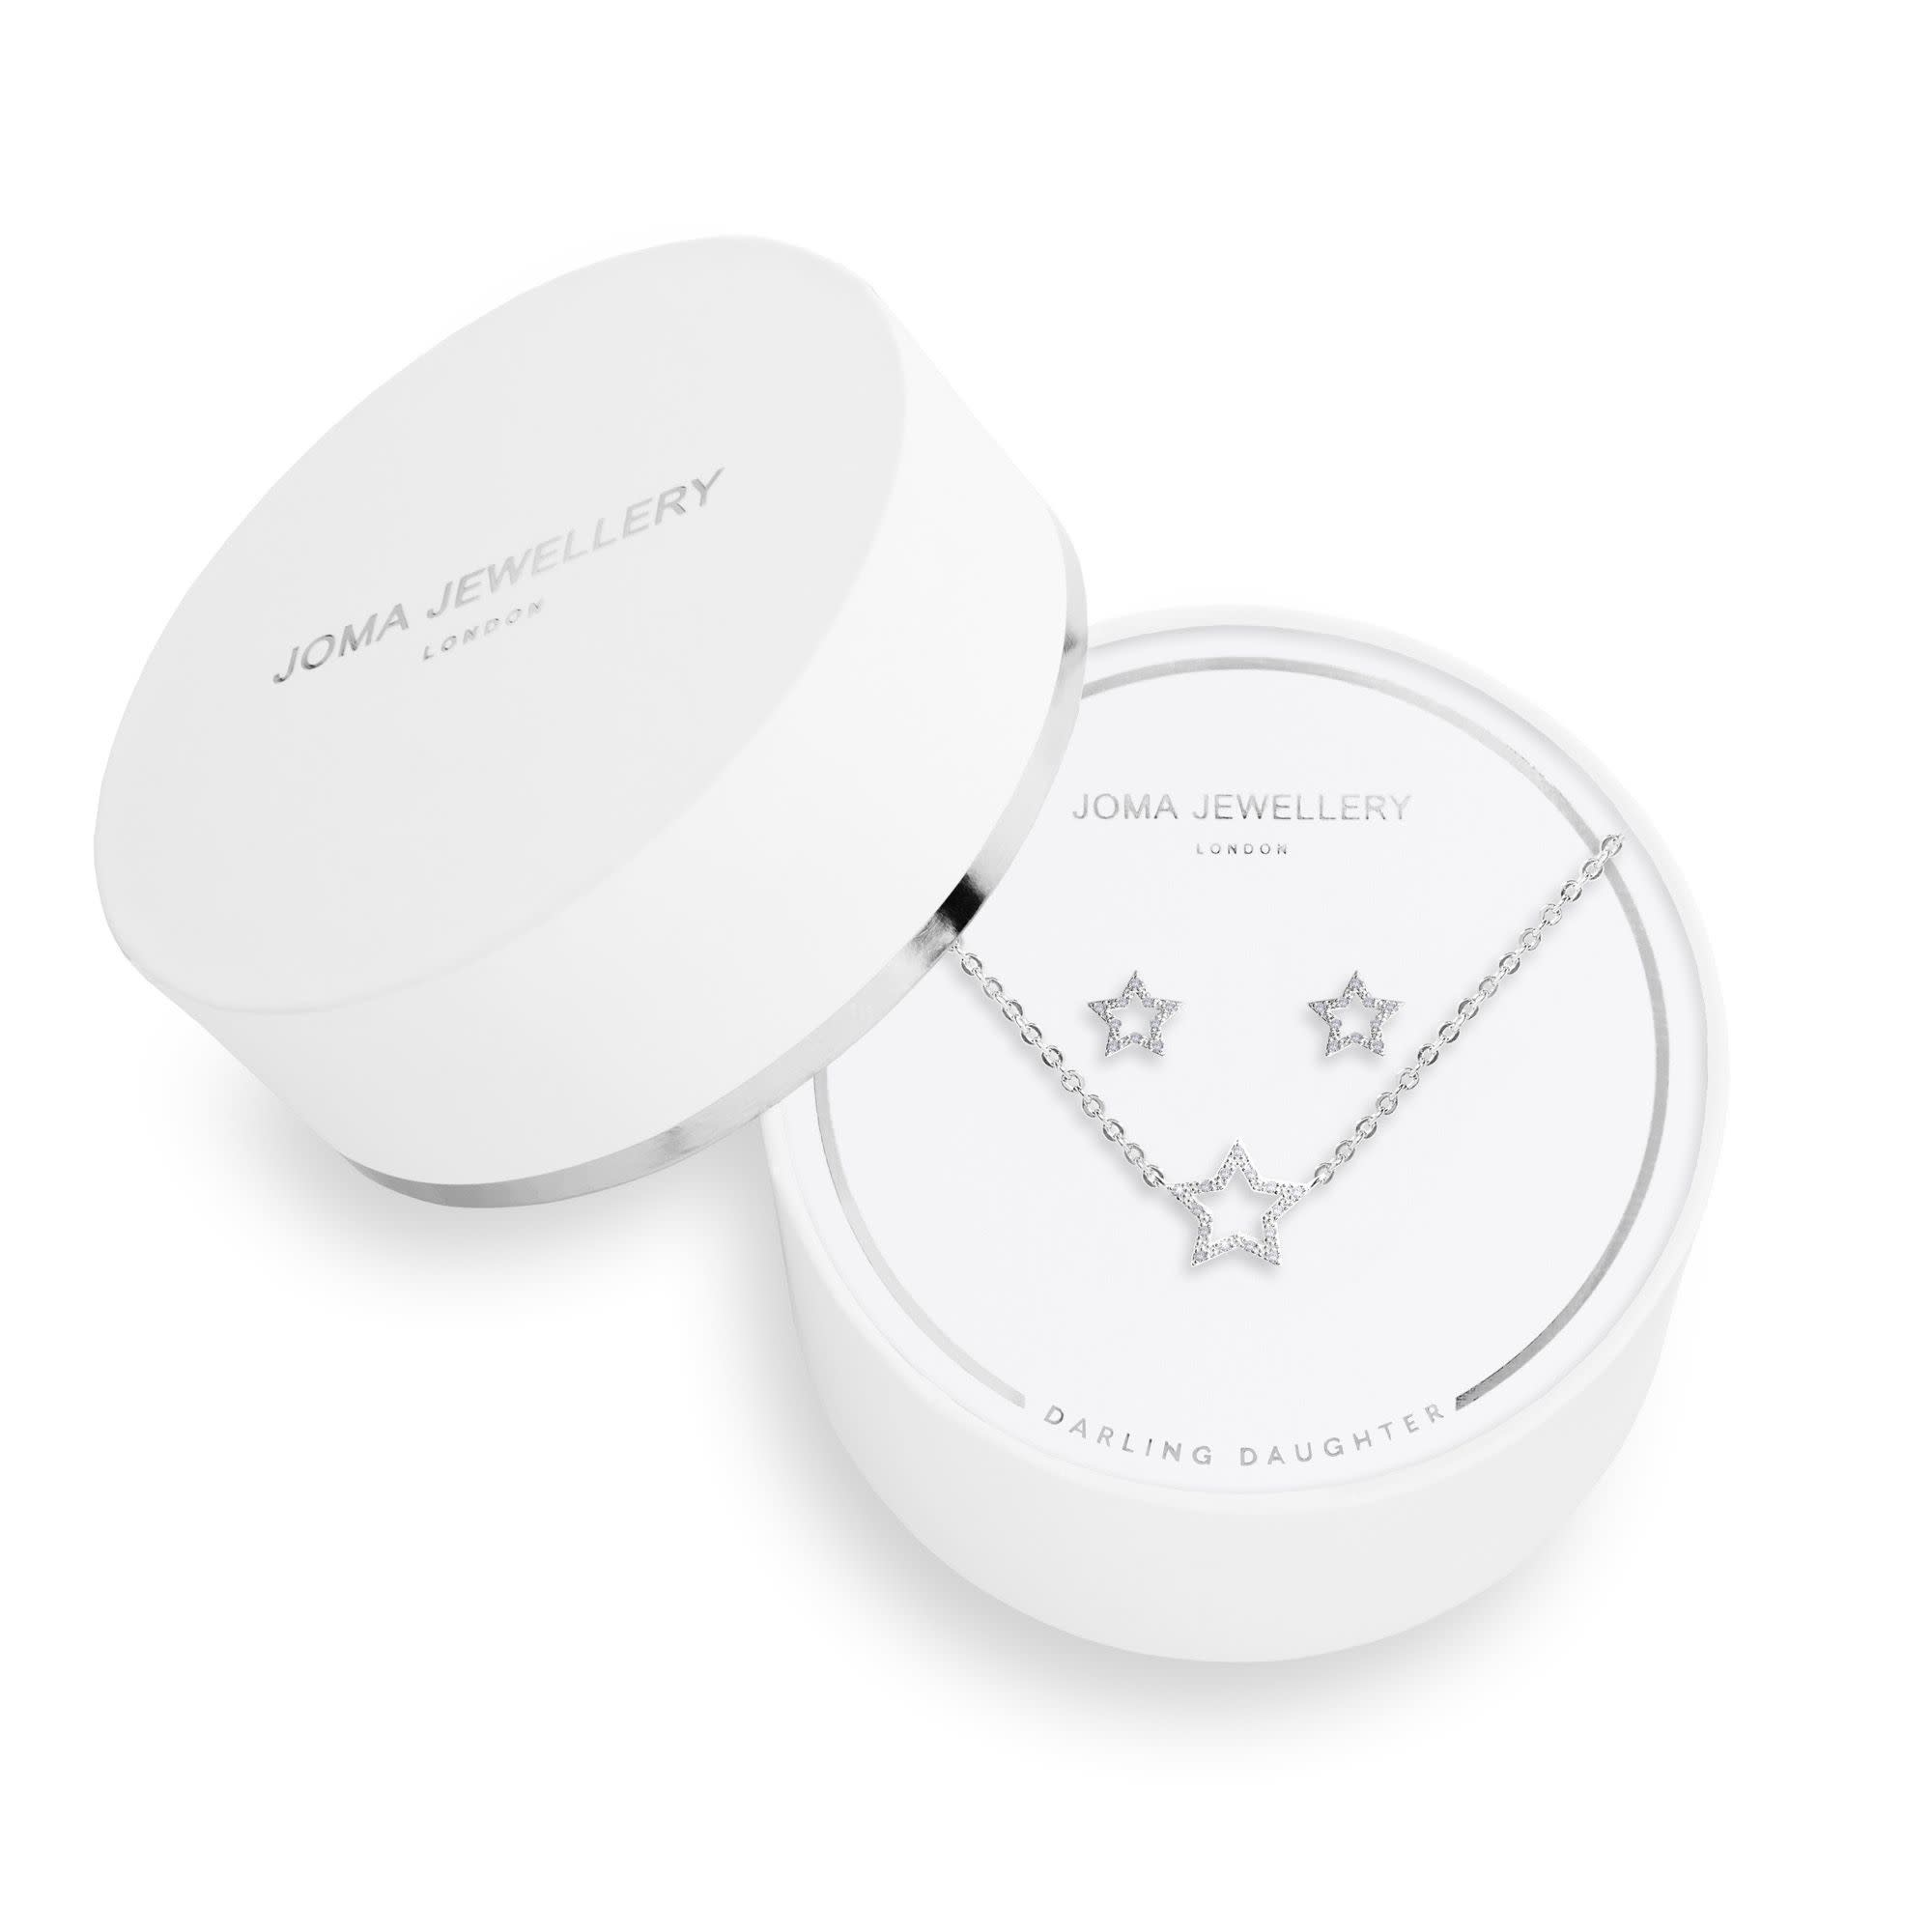 Joma Jewellery Sentiment Set - Darling Daughter